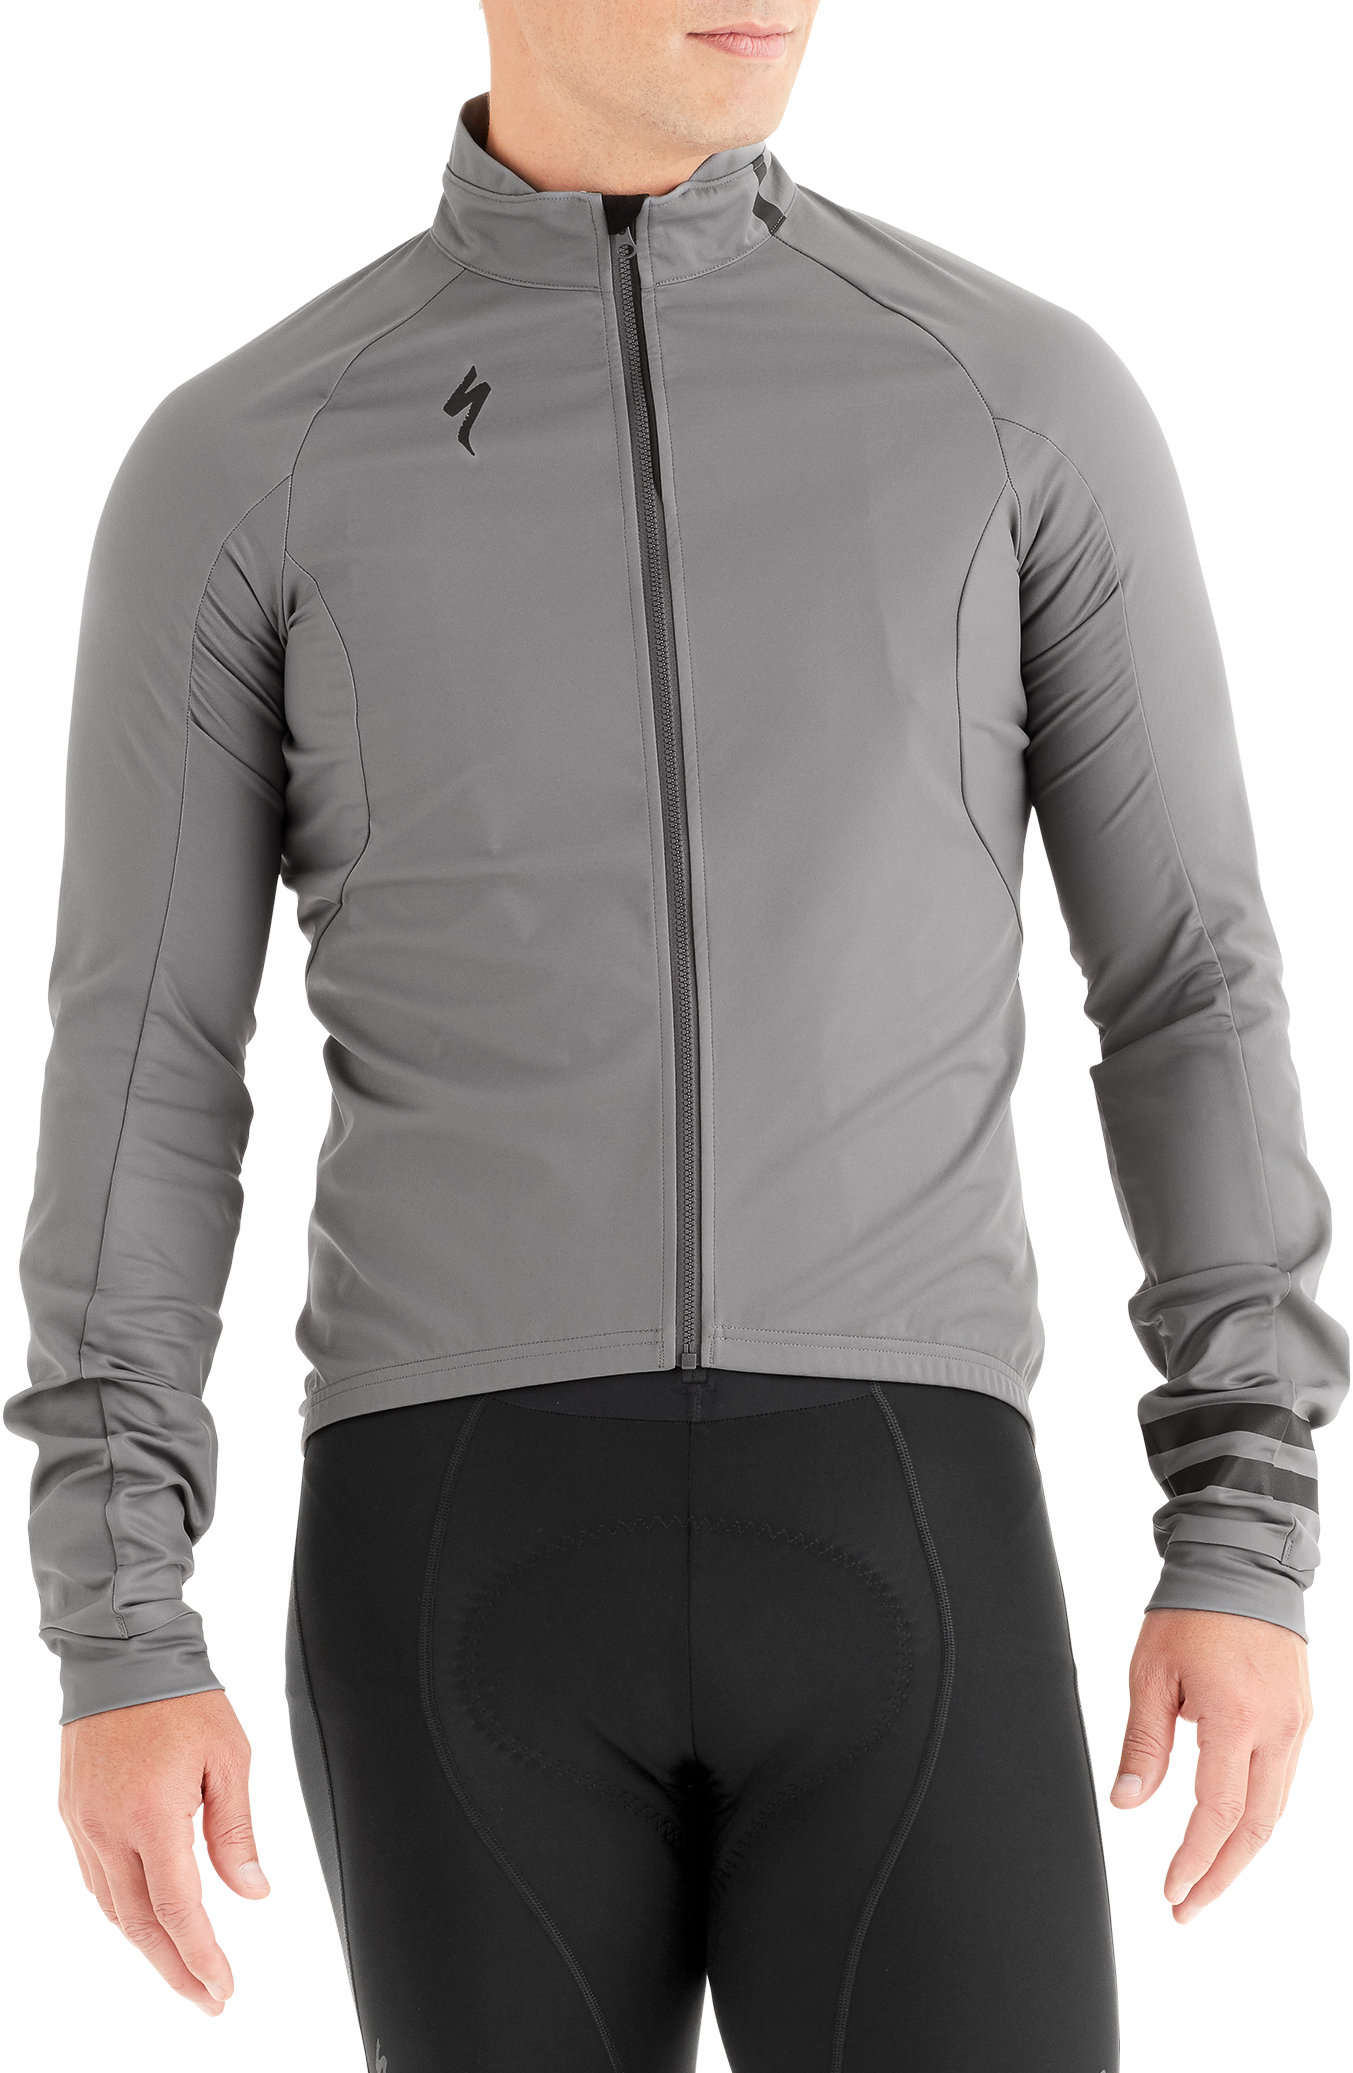 Specialized Element 1.0 Jacket Gregg's Cycles